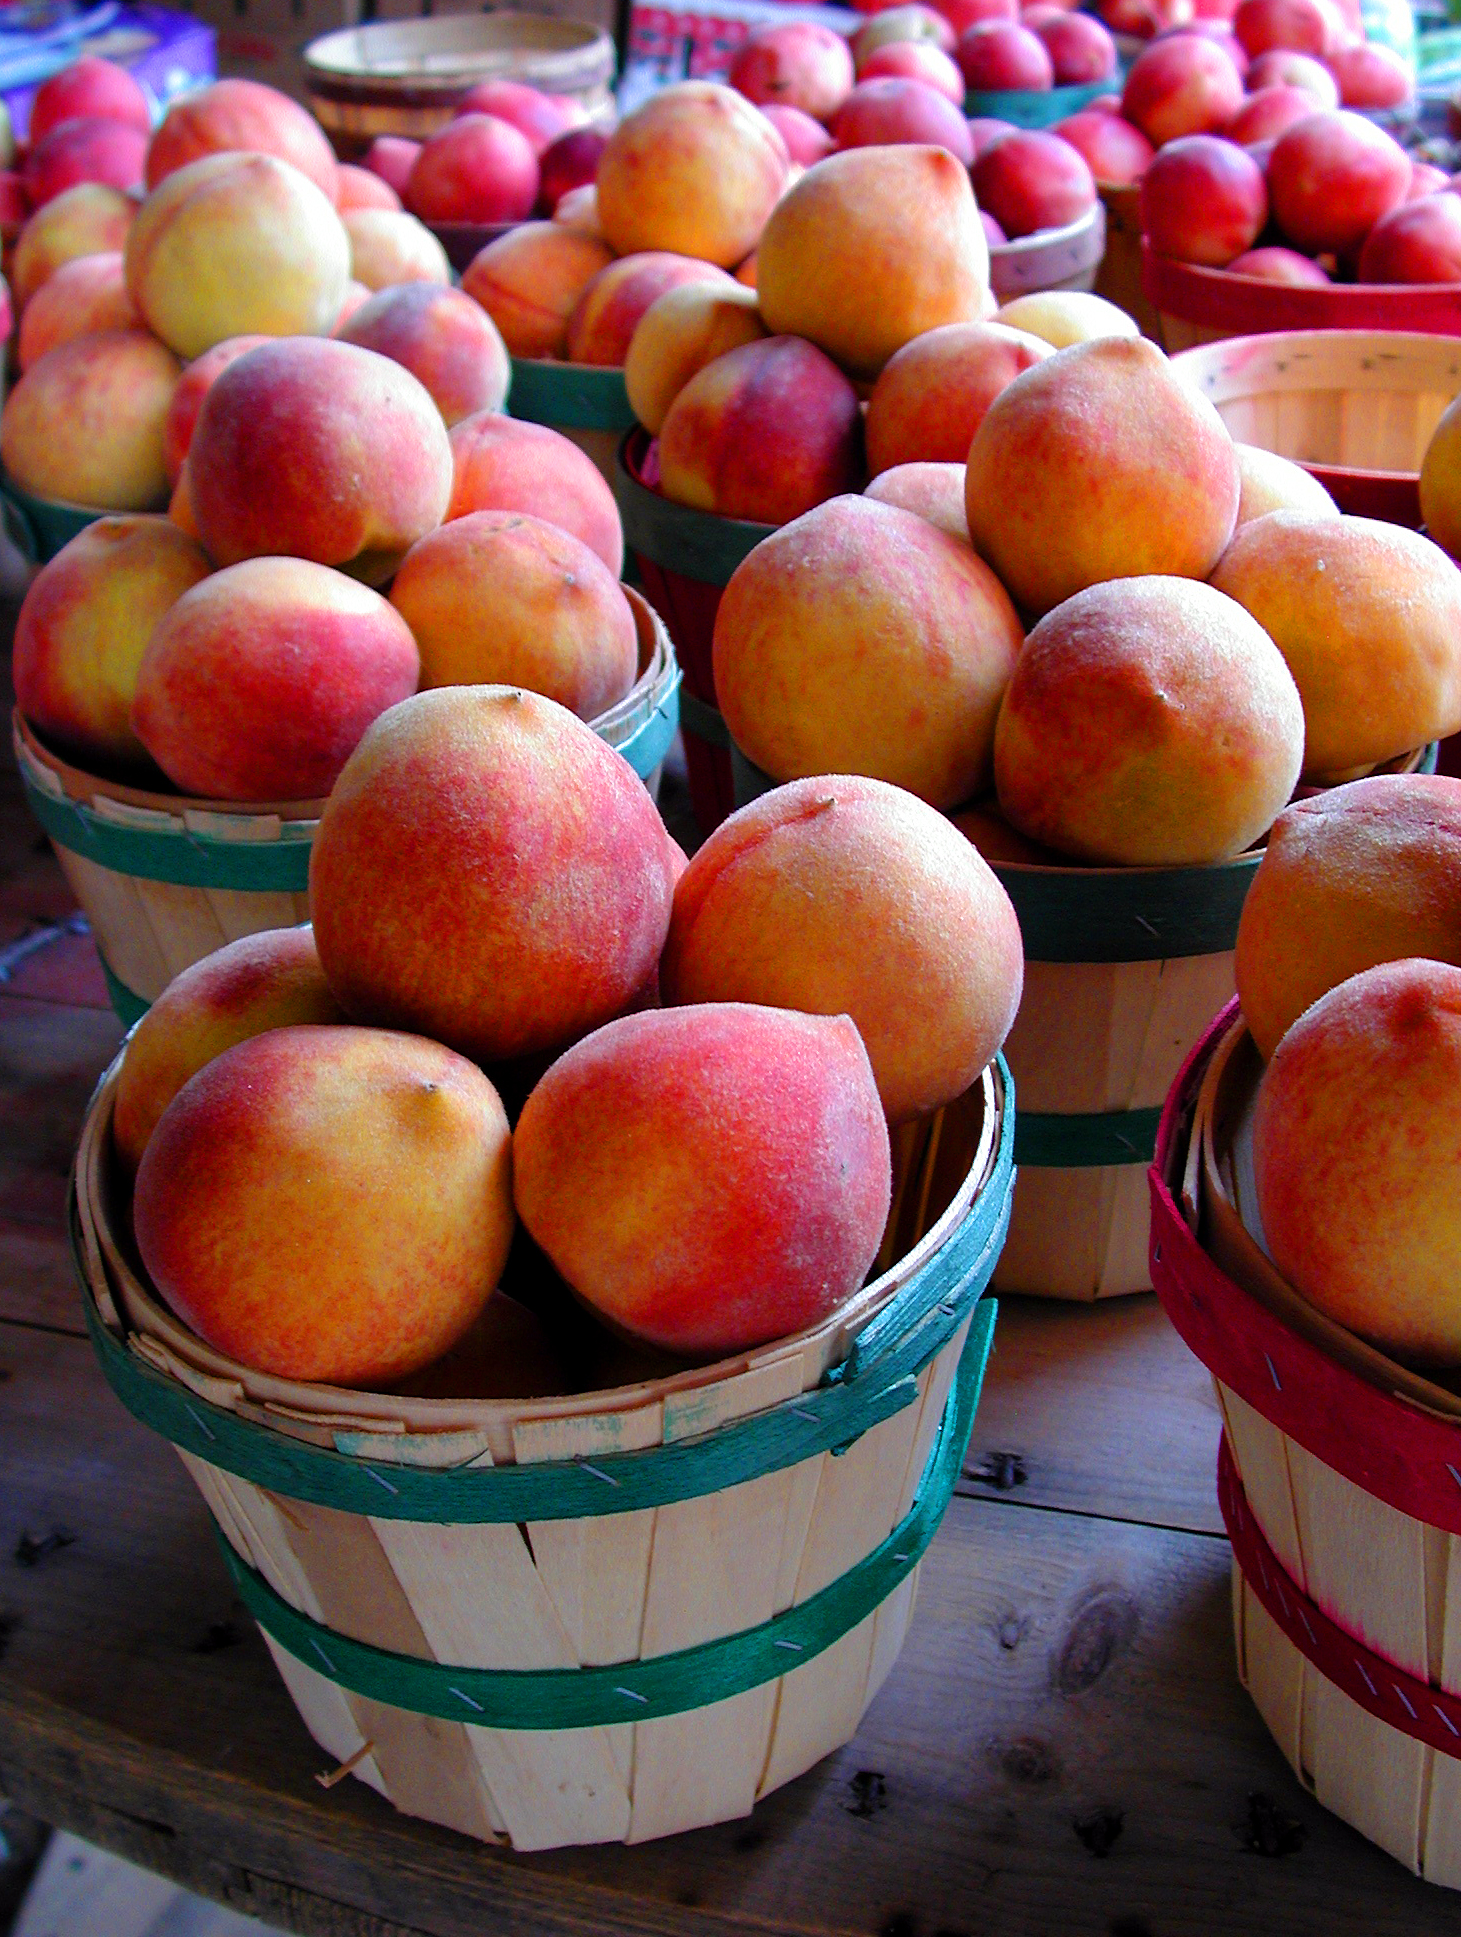 Georgia Peaches Photo by mstroz/iStock/Getty Images